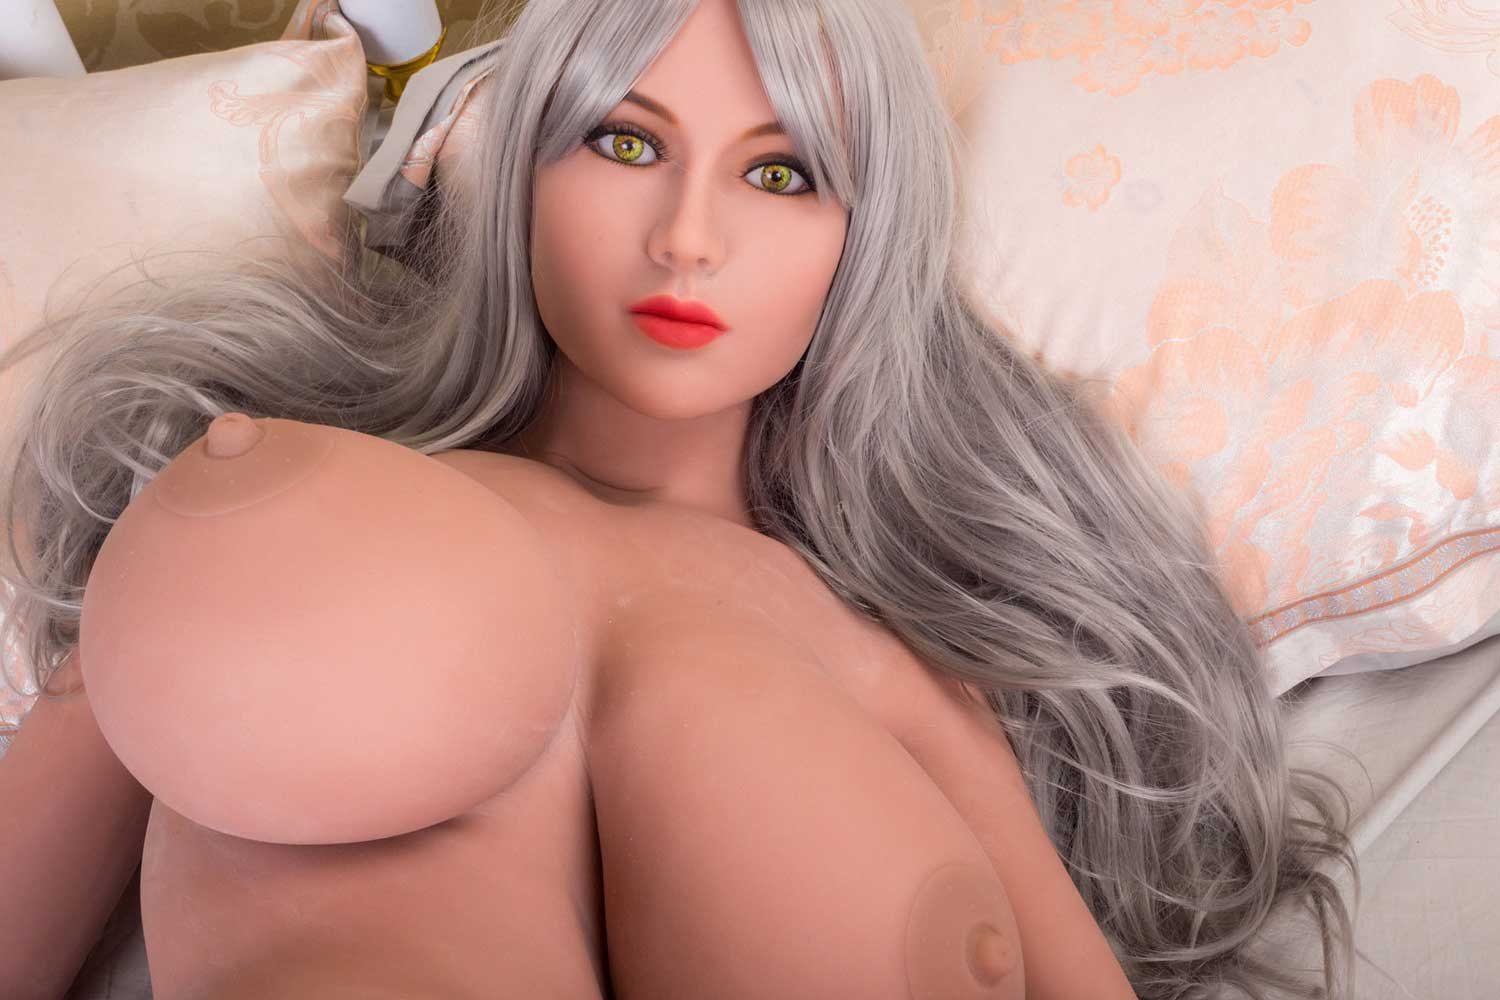 Sex doll with brown nipples